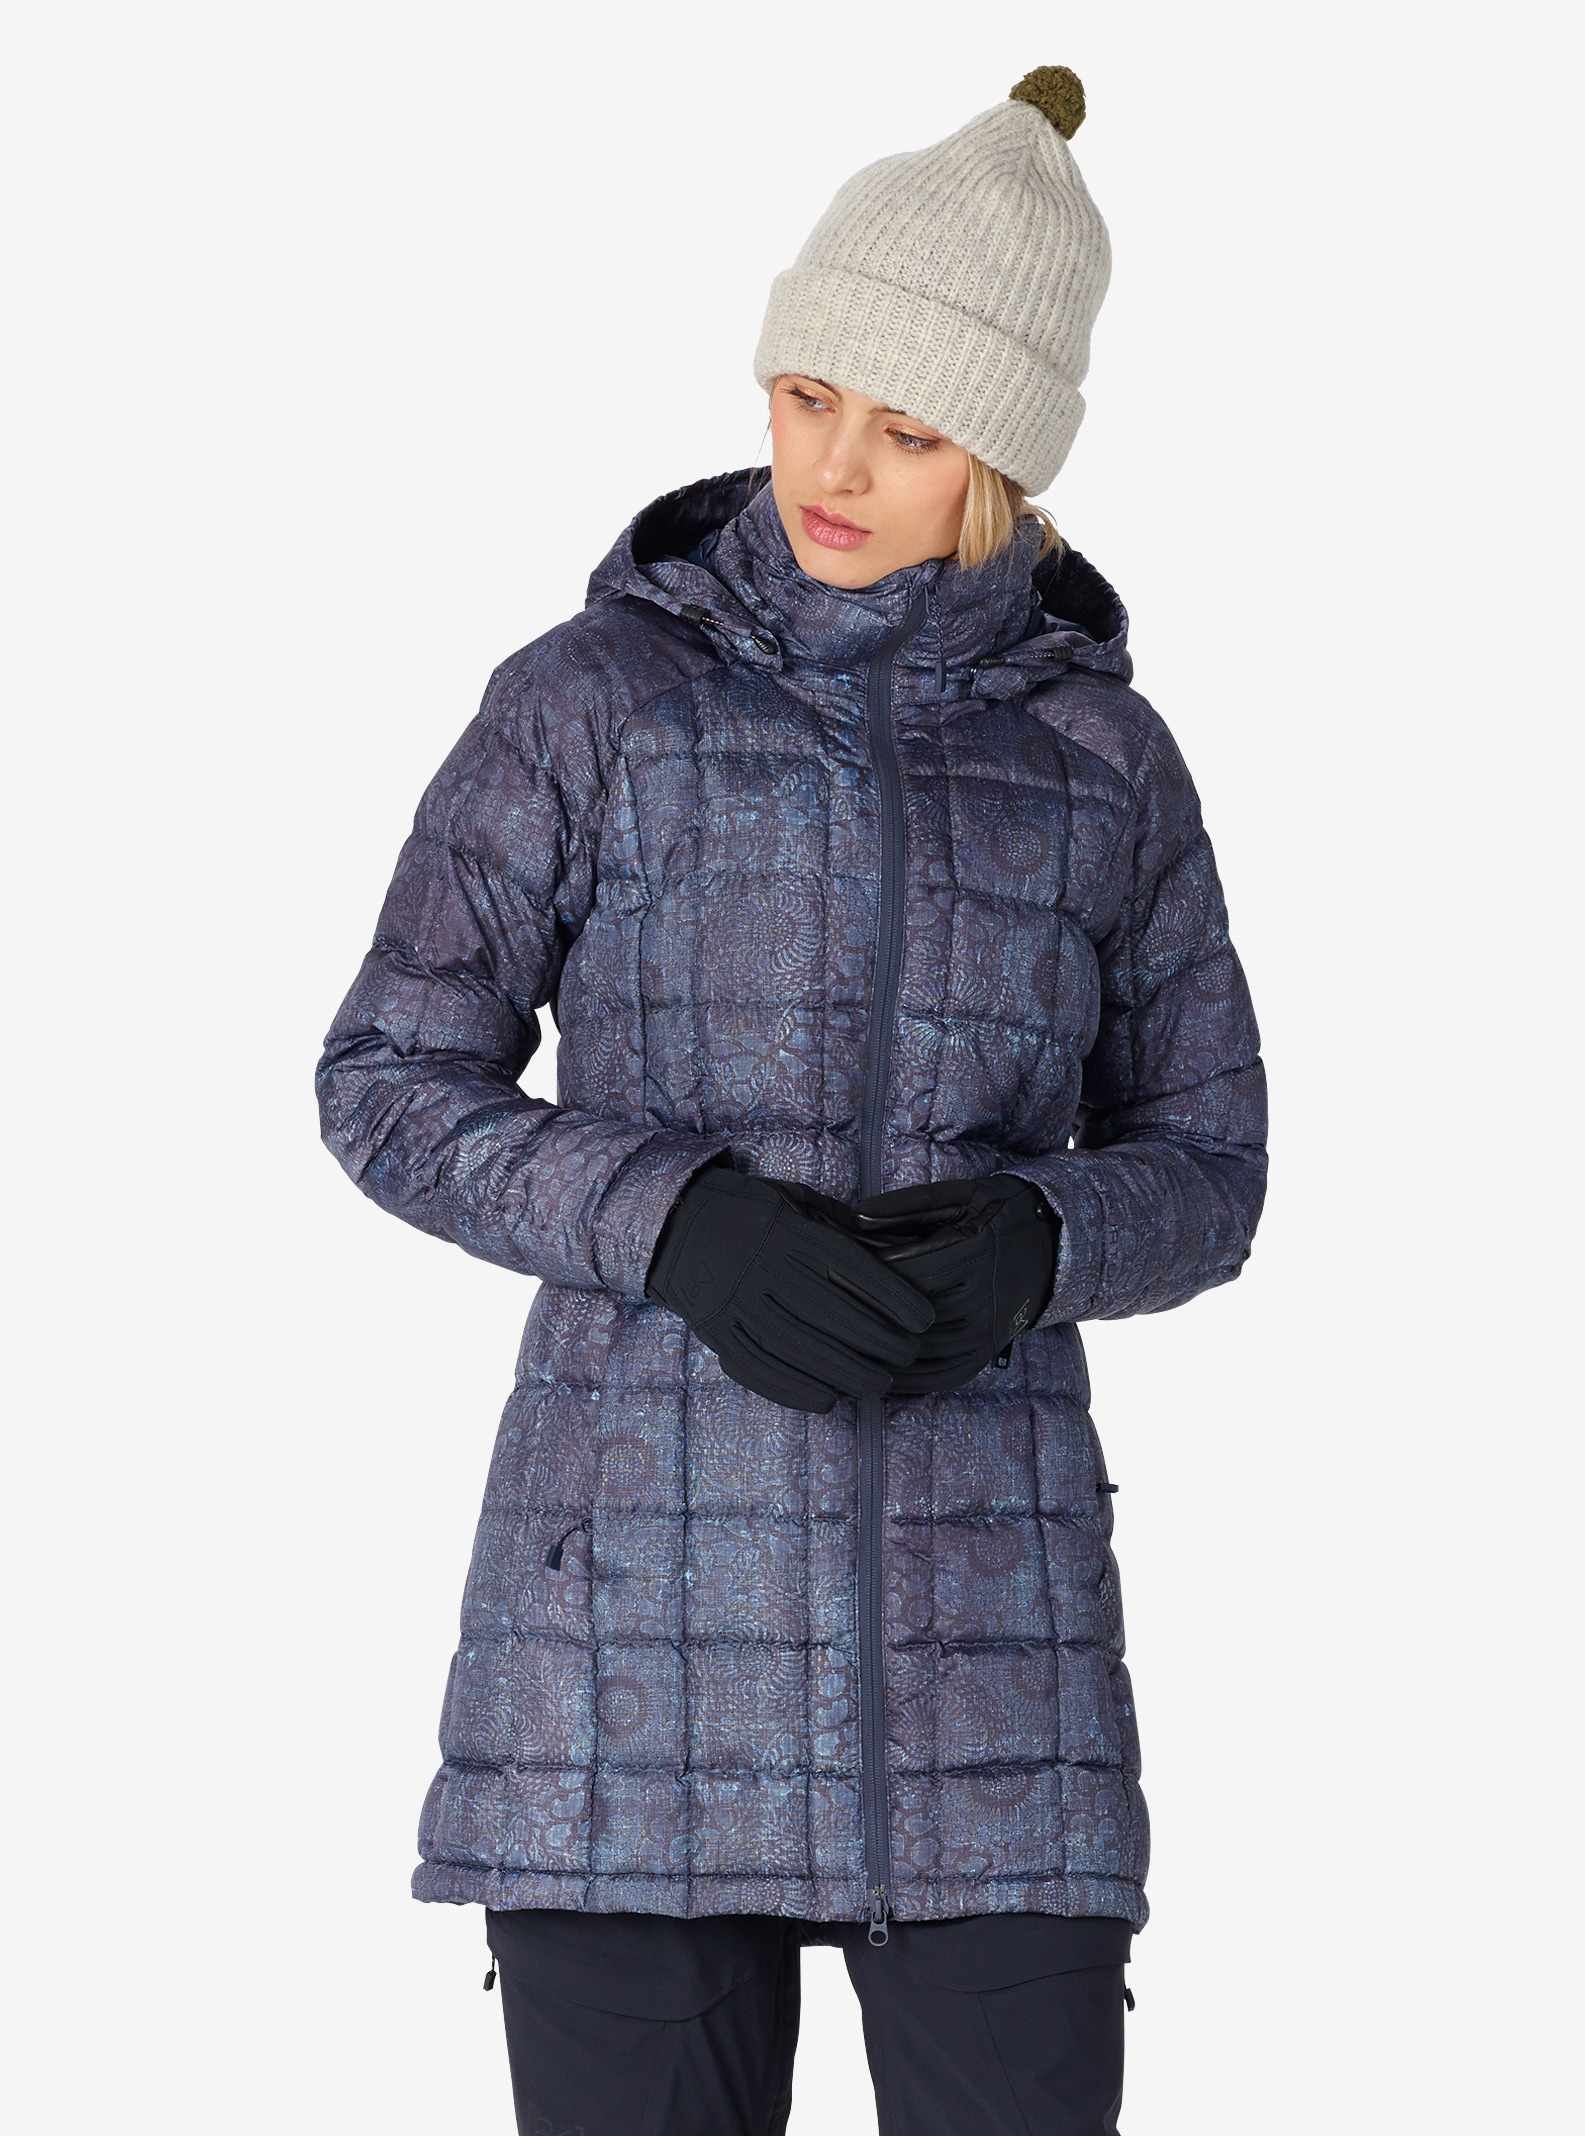 Women's Burton [ak] Long Baker Down Insulator Jacket shown in Indigo Floral